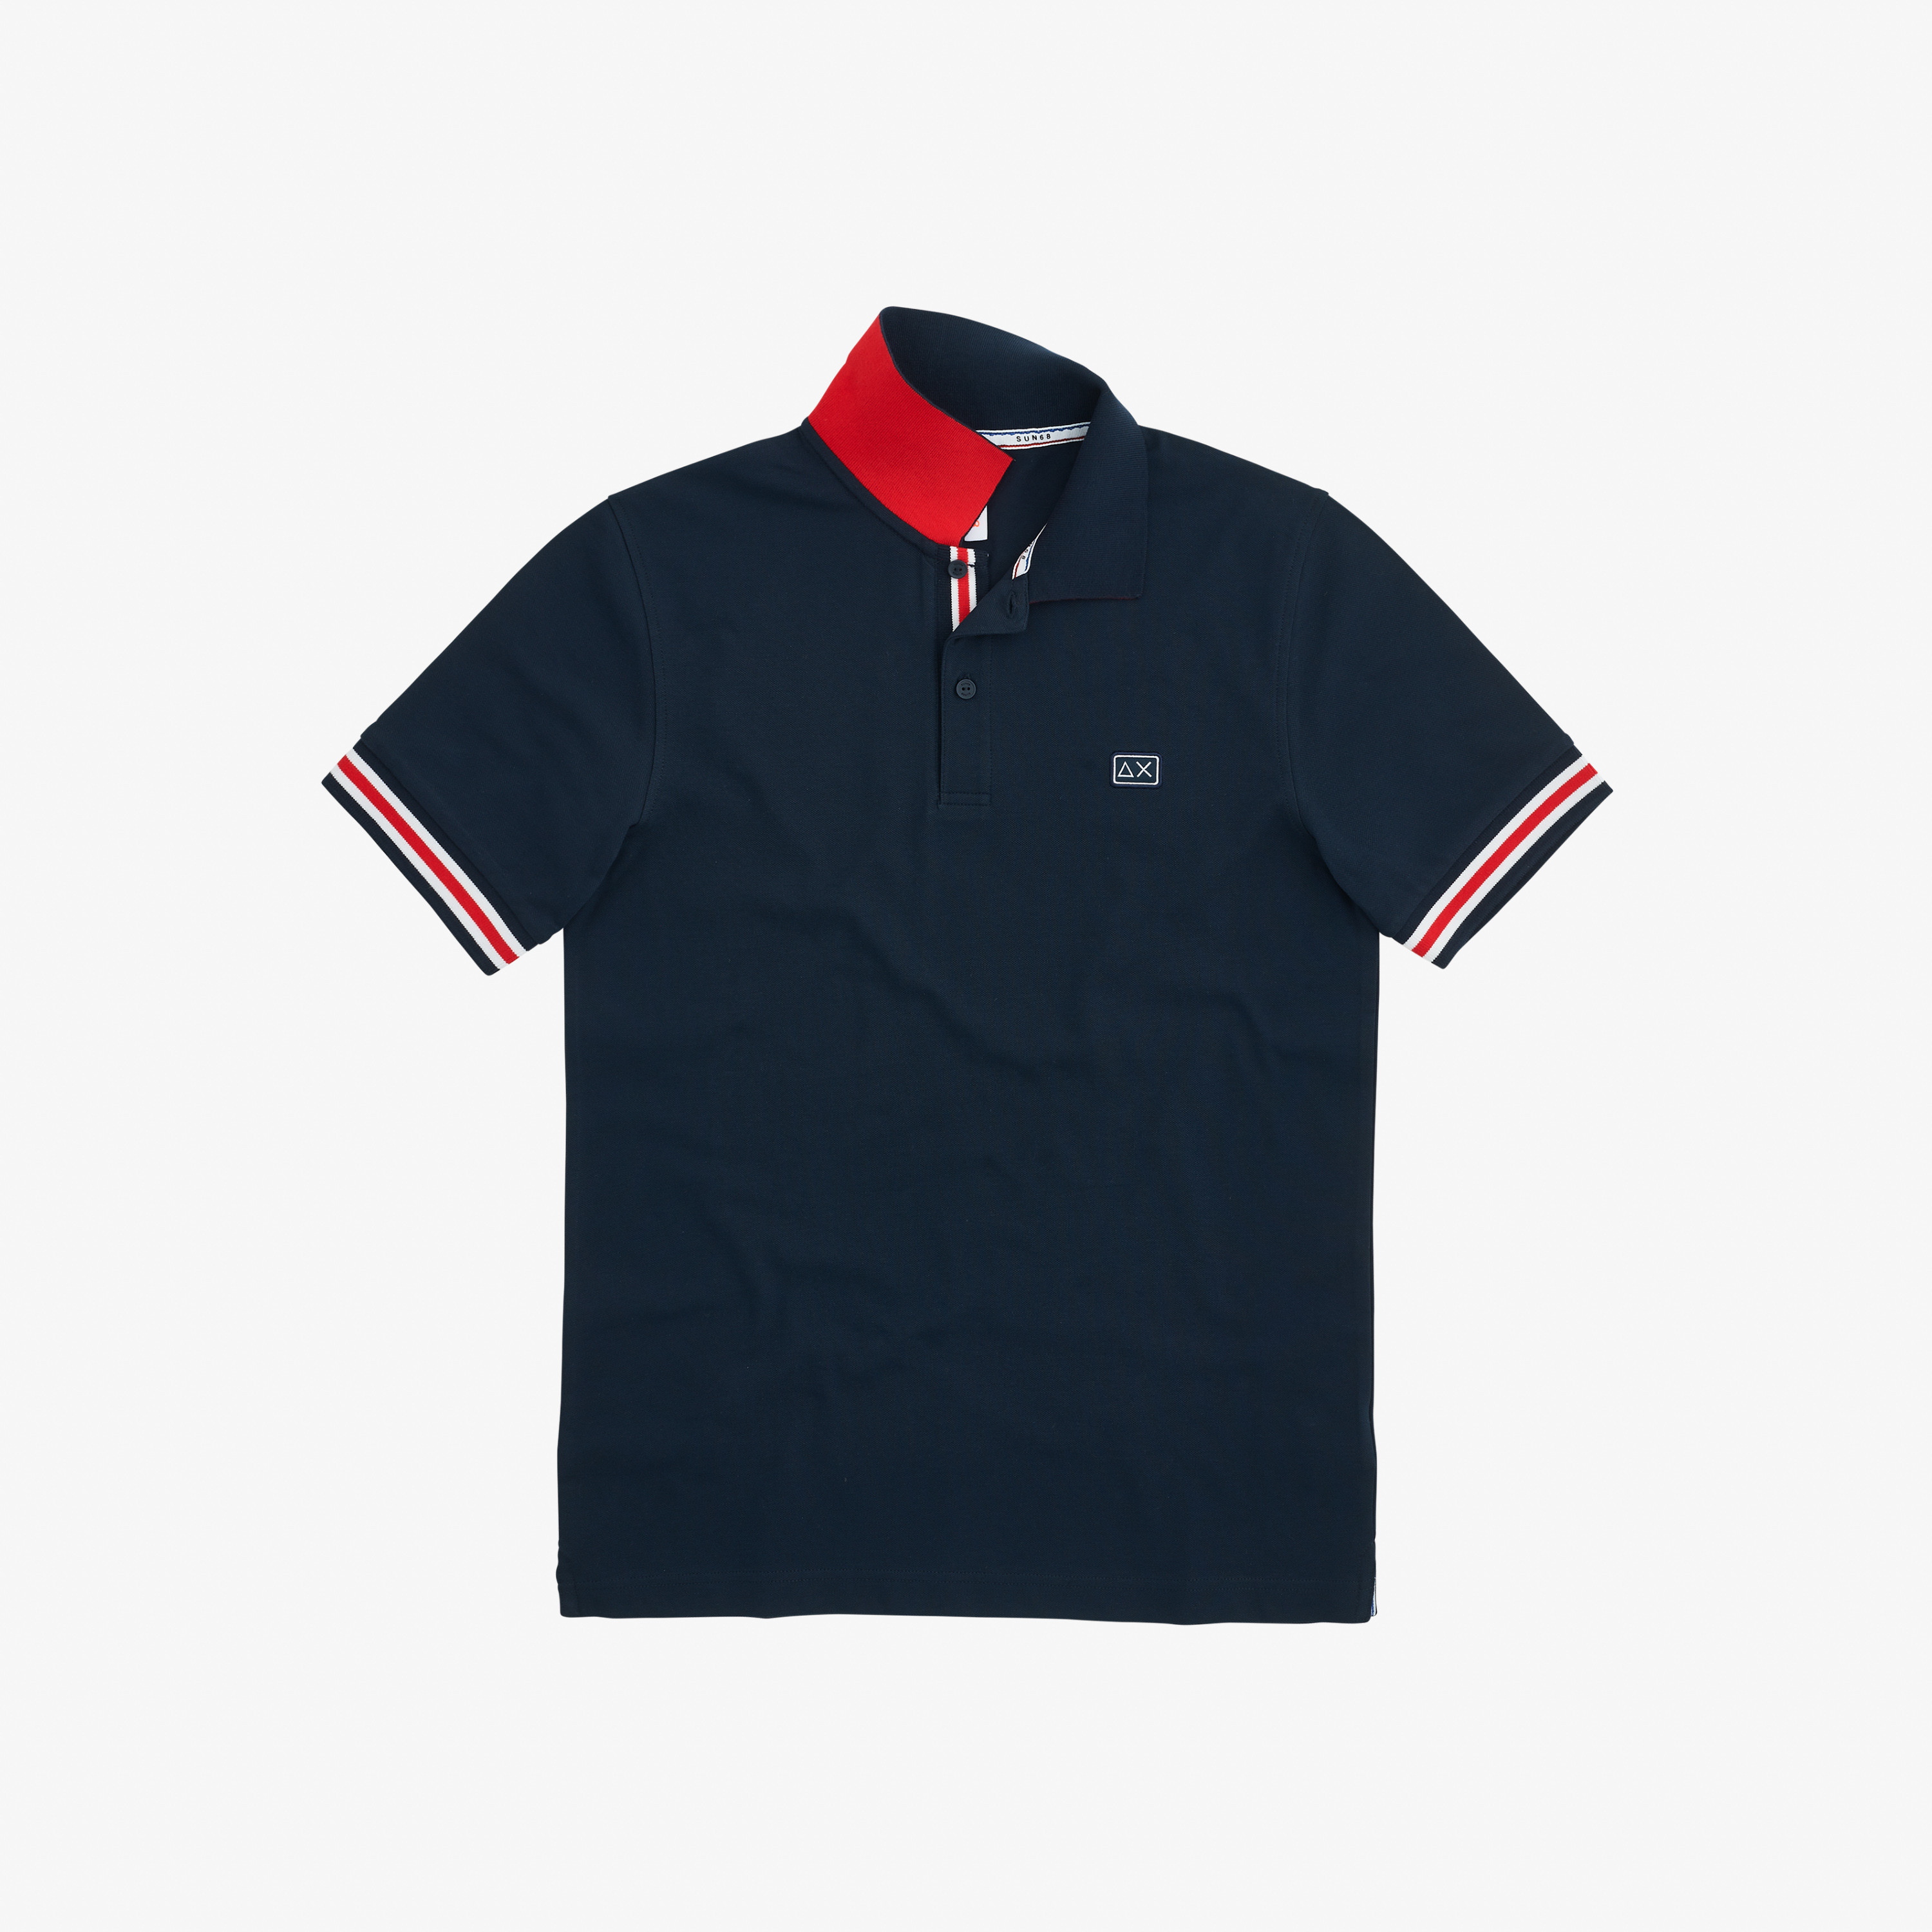 POLO STRIPES ON FRONT PLACKET EL. NAVY BLUE